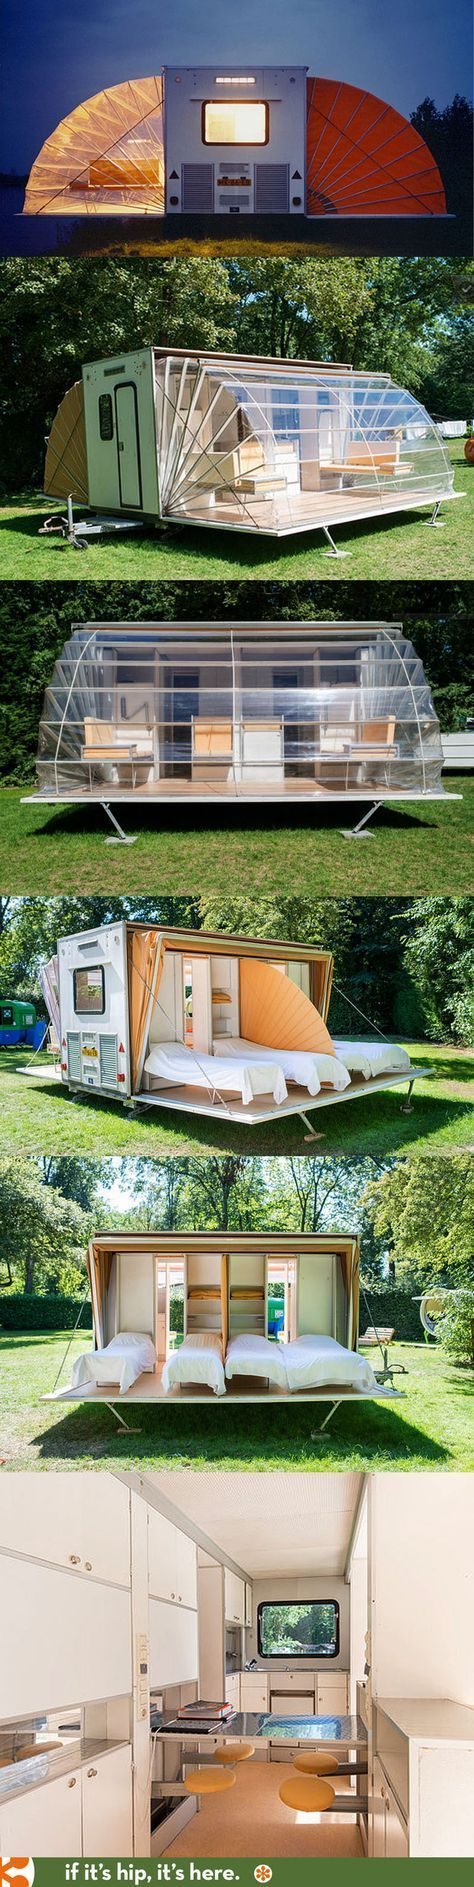 Photo of The coolest caravan in the urban campsite, The Marquis by Eduard Bohtli …